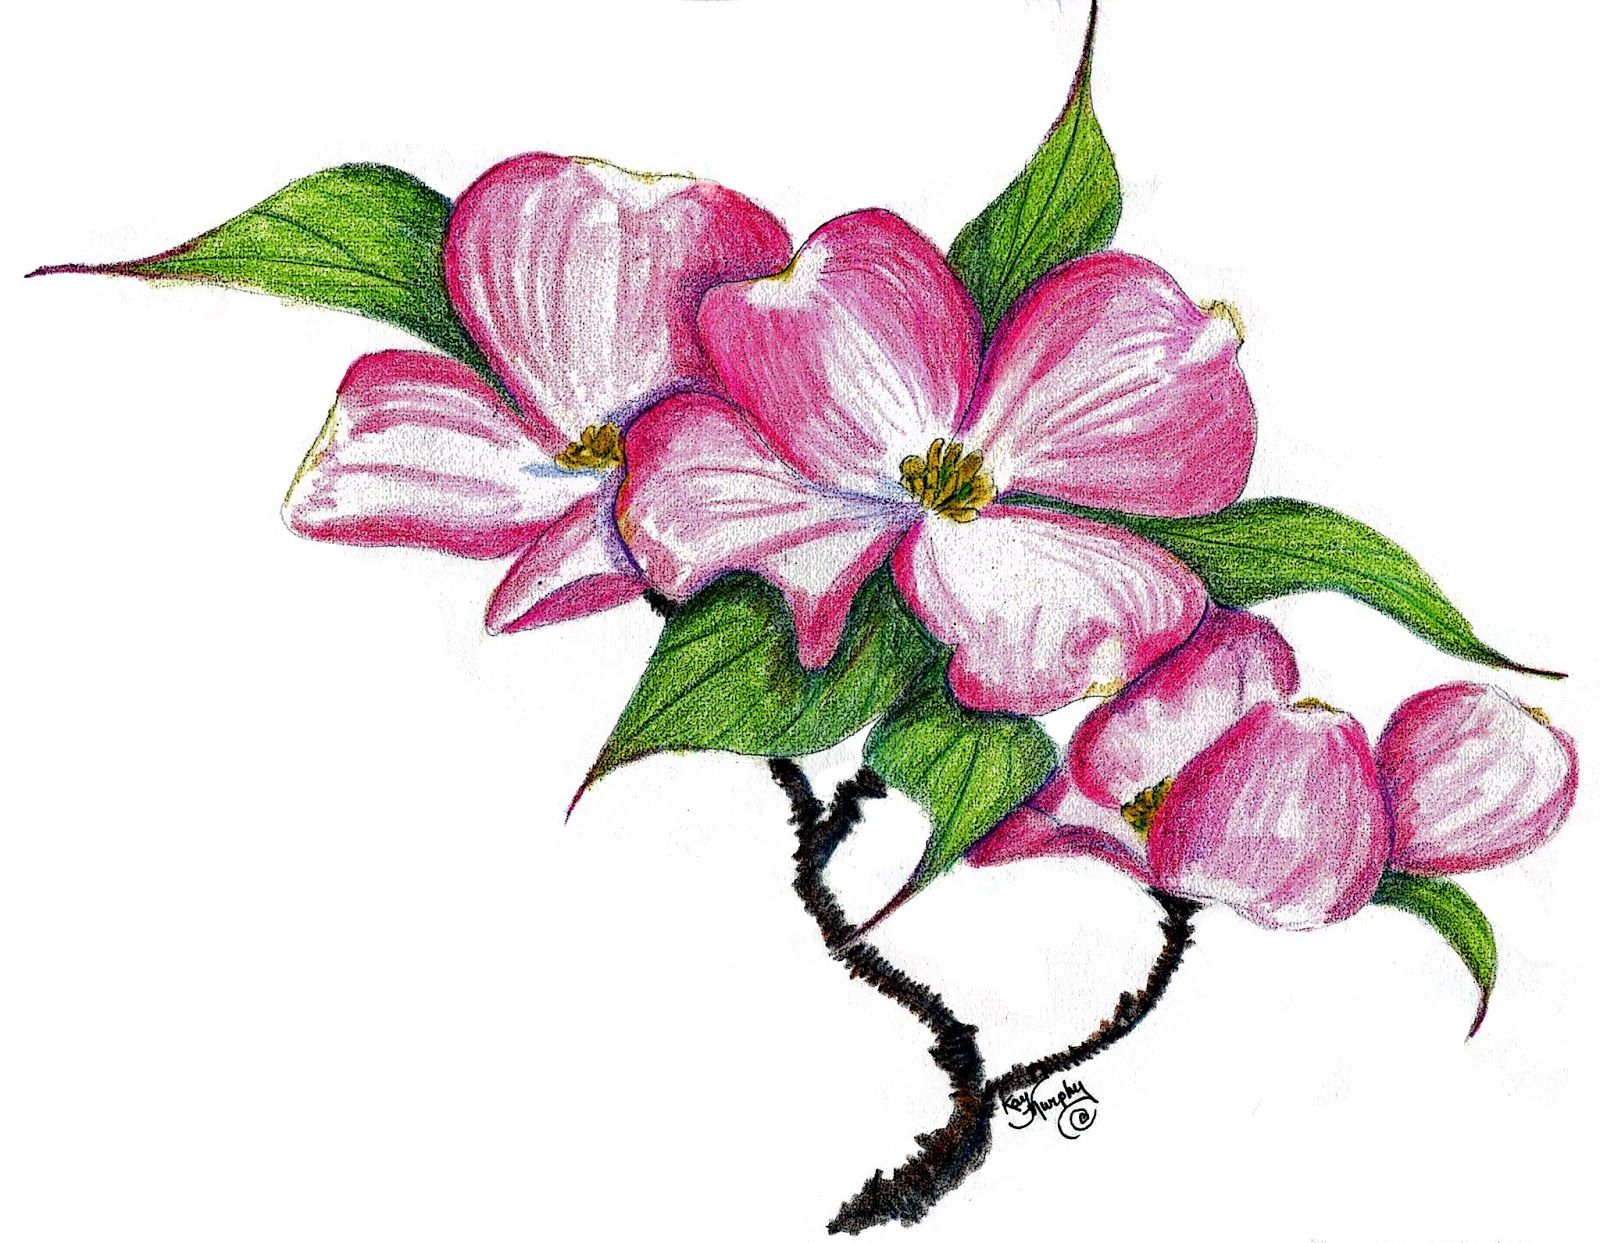 Dogwood Blossom Drawing At Getdrawings Free For Personal Use